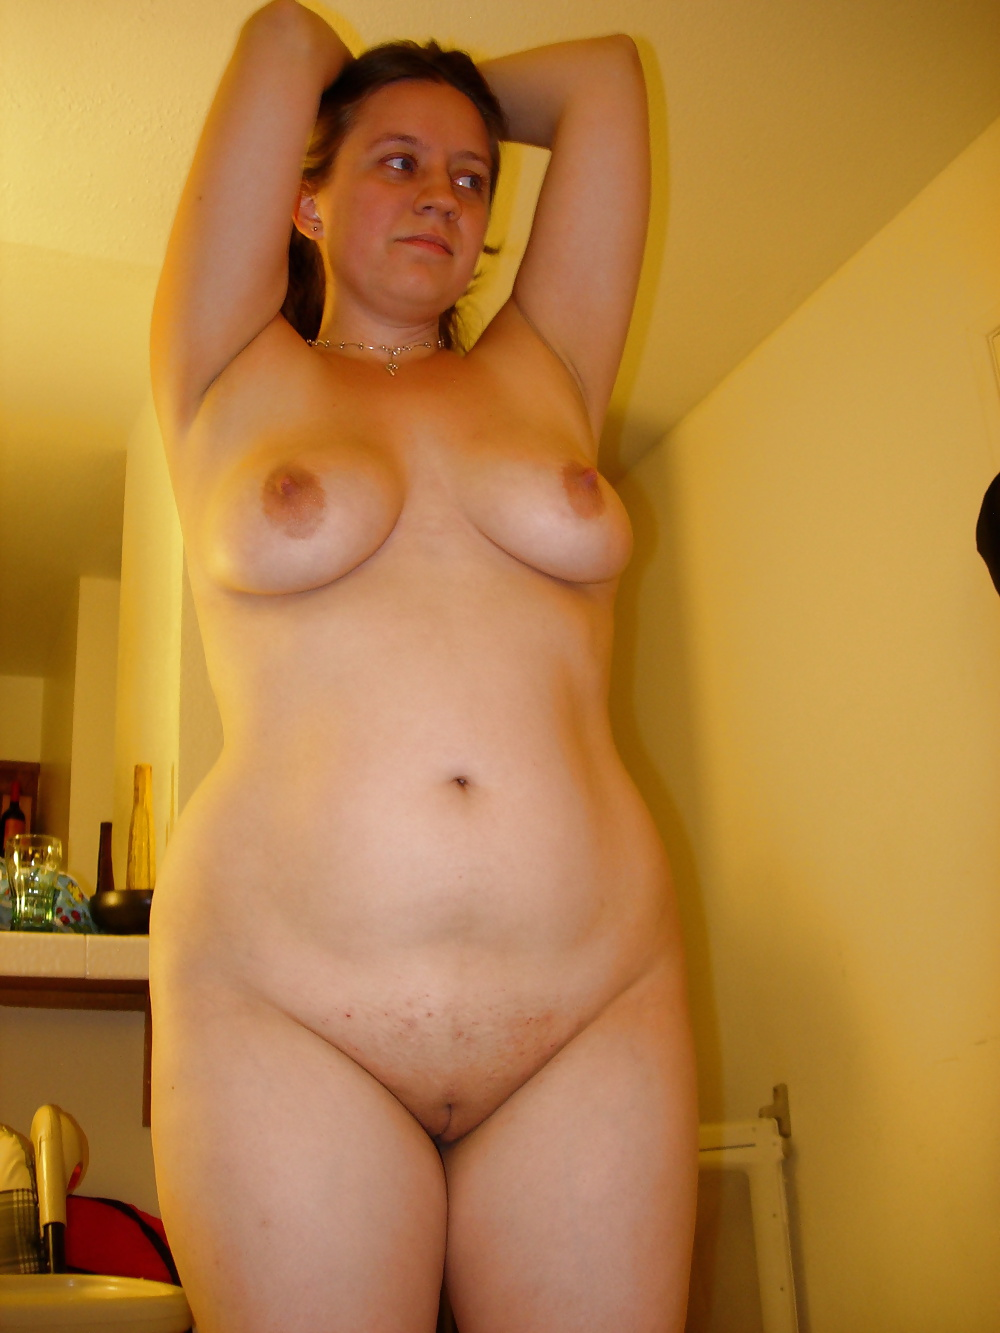 Naked chubby amateurs tumblr pics